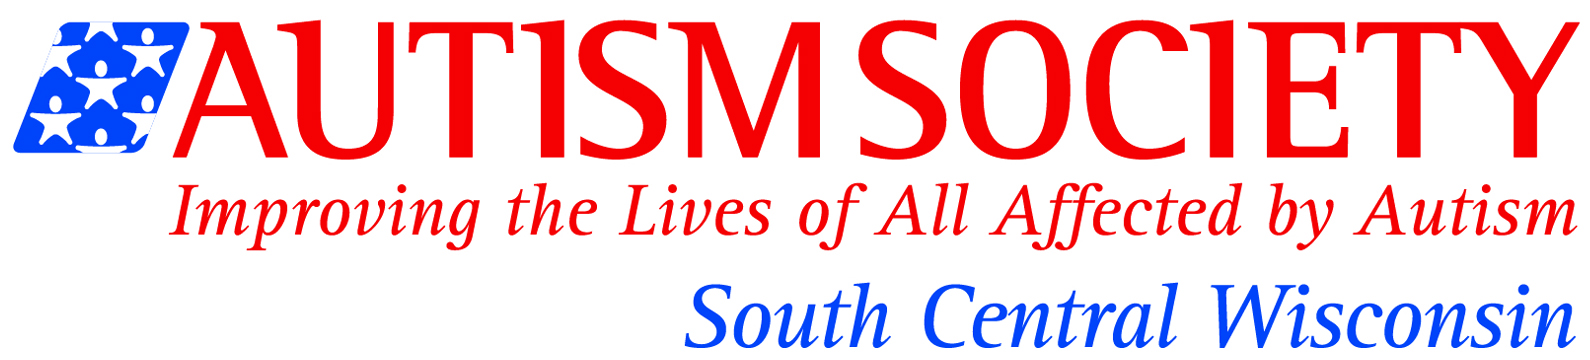 Autism Society of South Central Wisconsin